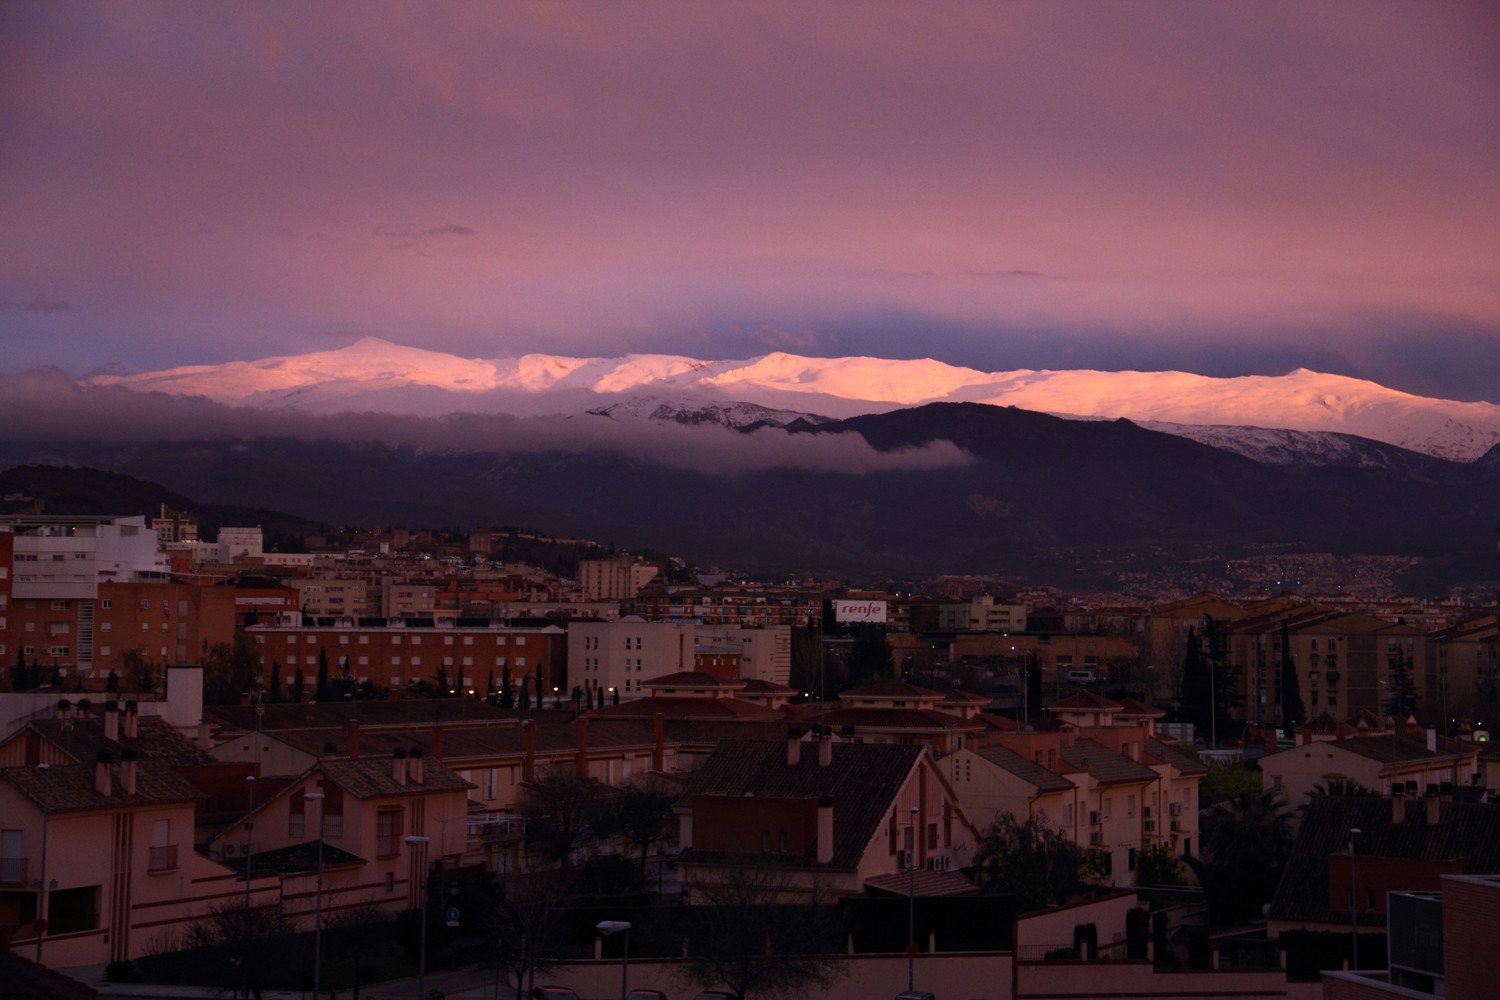 """Evening Glow"" - PN Sierra Nevada, Granada - MC06087"